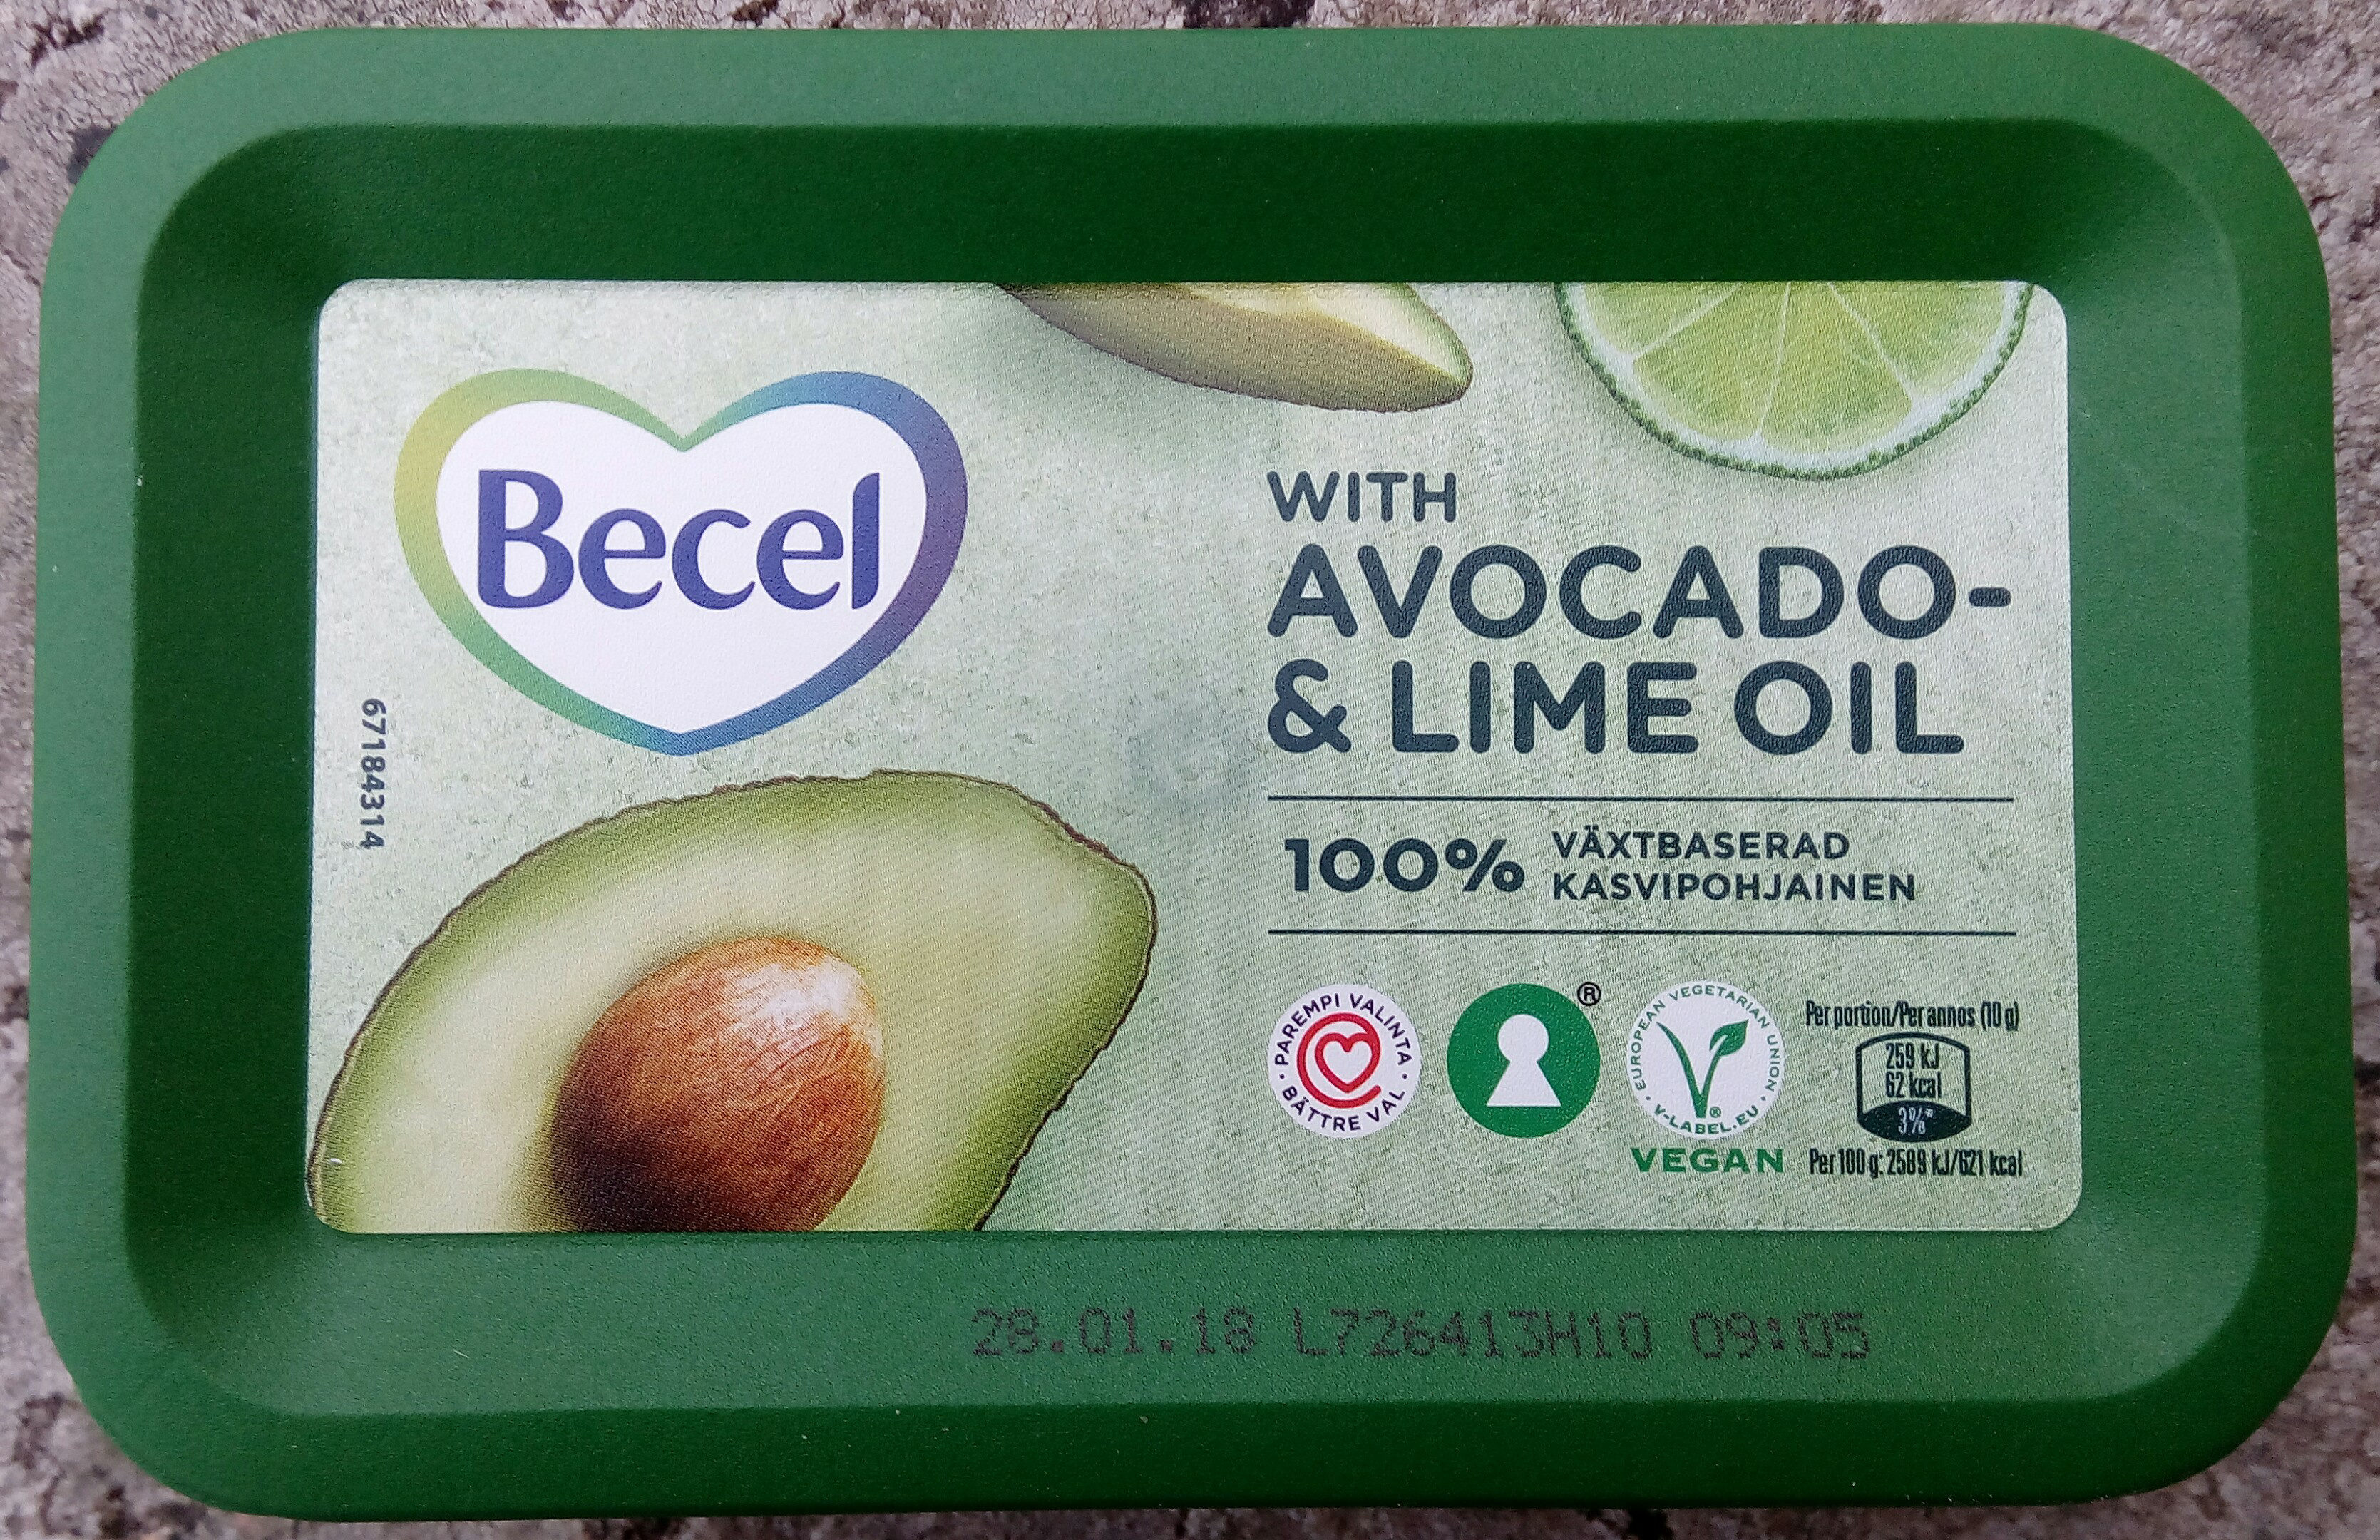 Becel with Avocado- & Lime Oil - Product